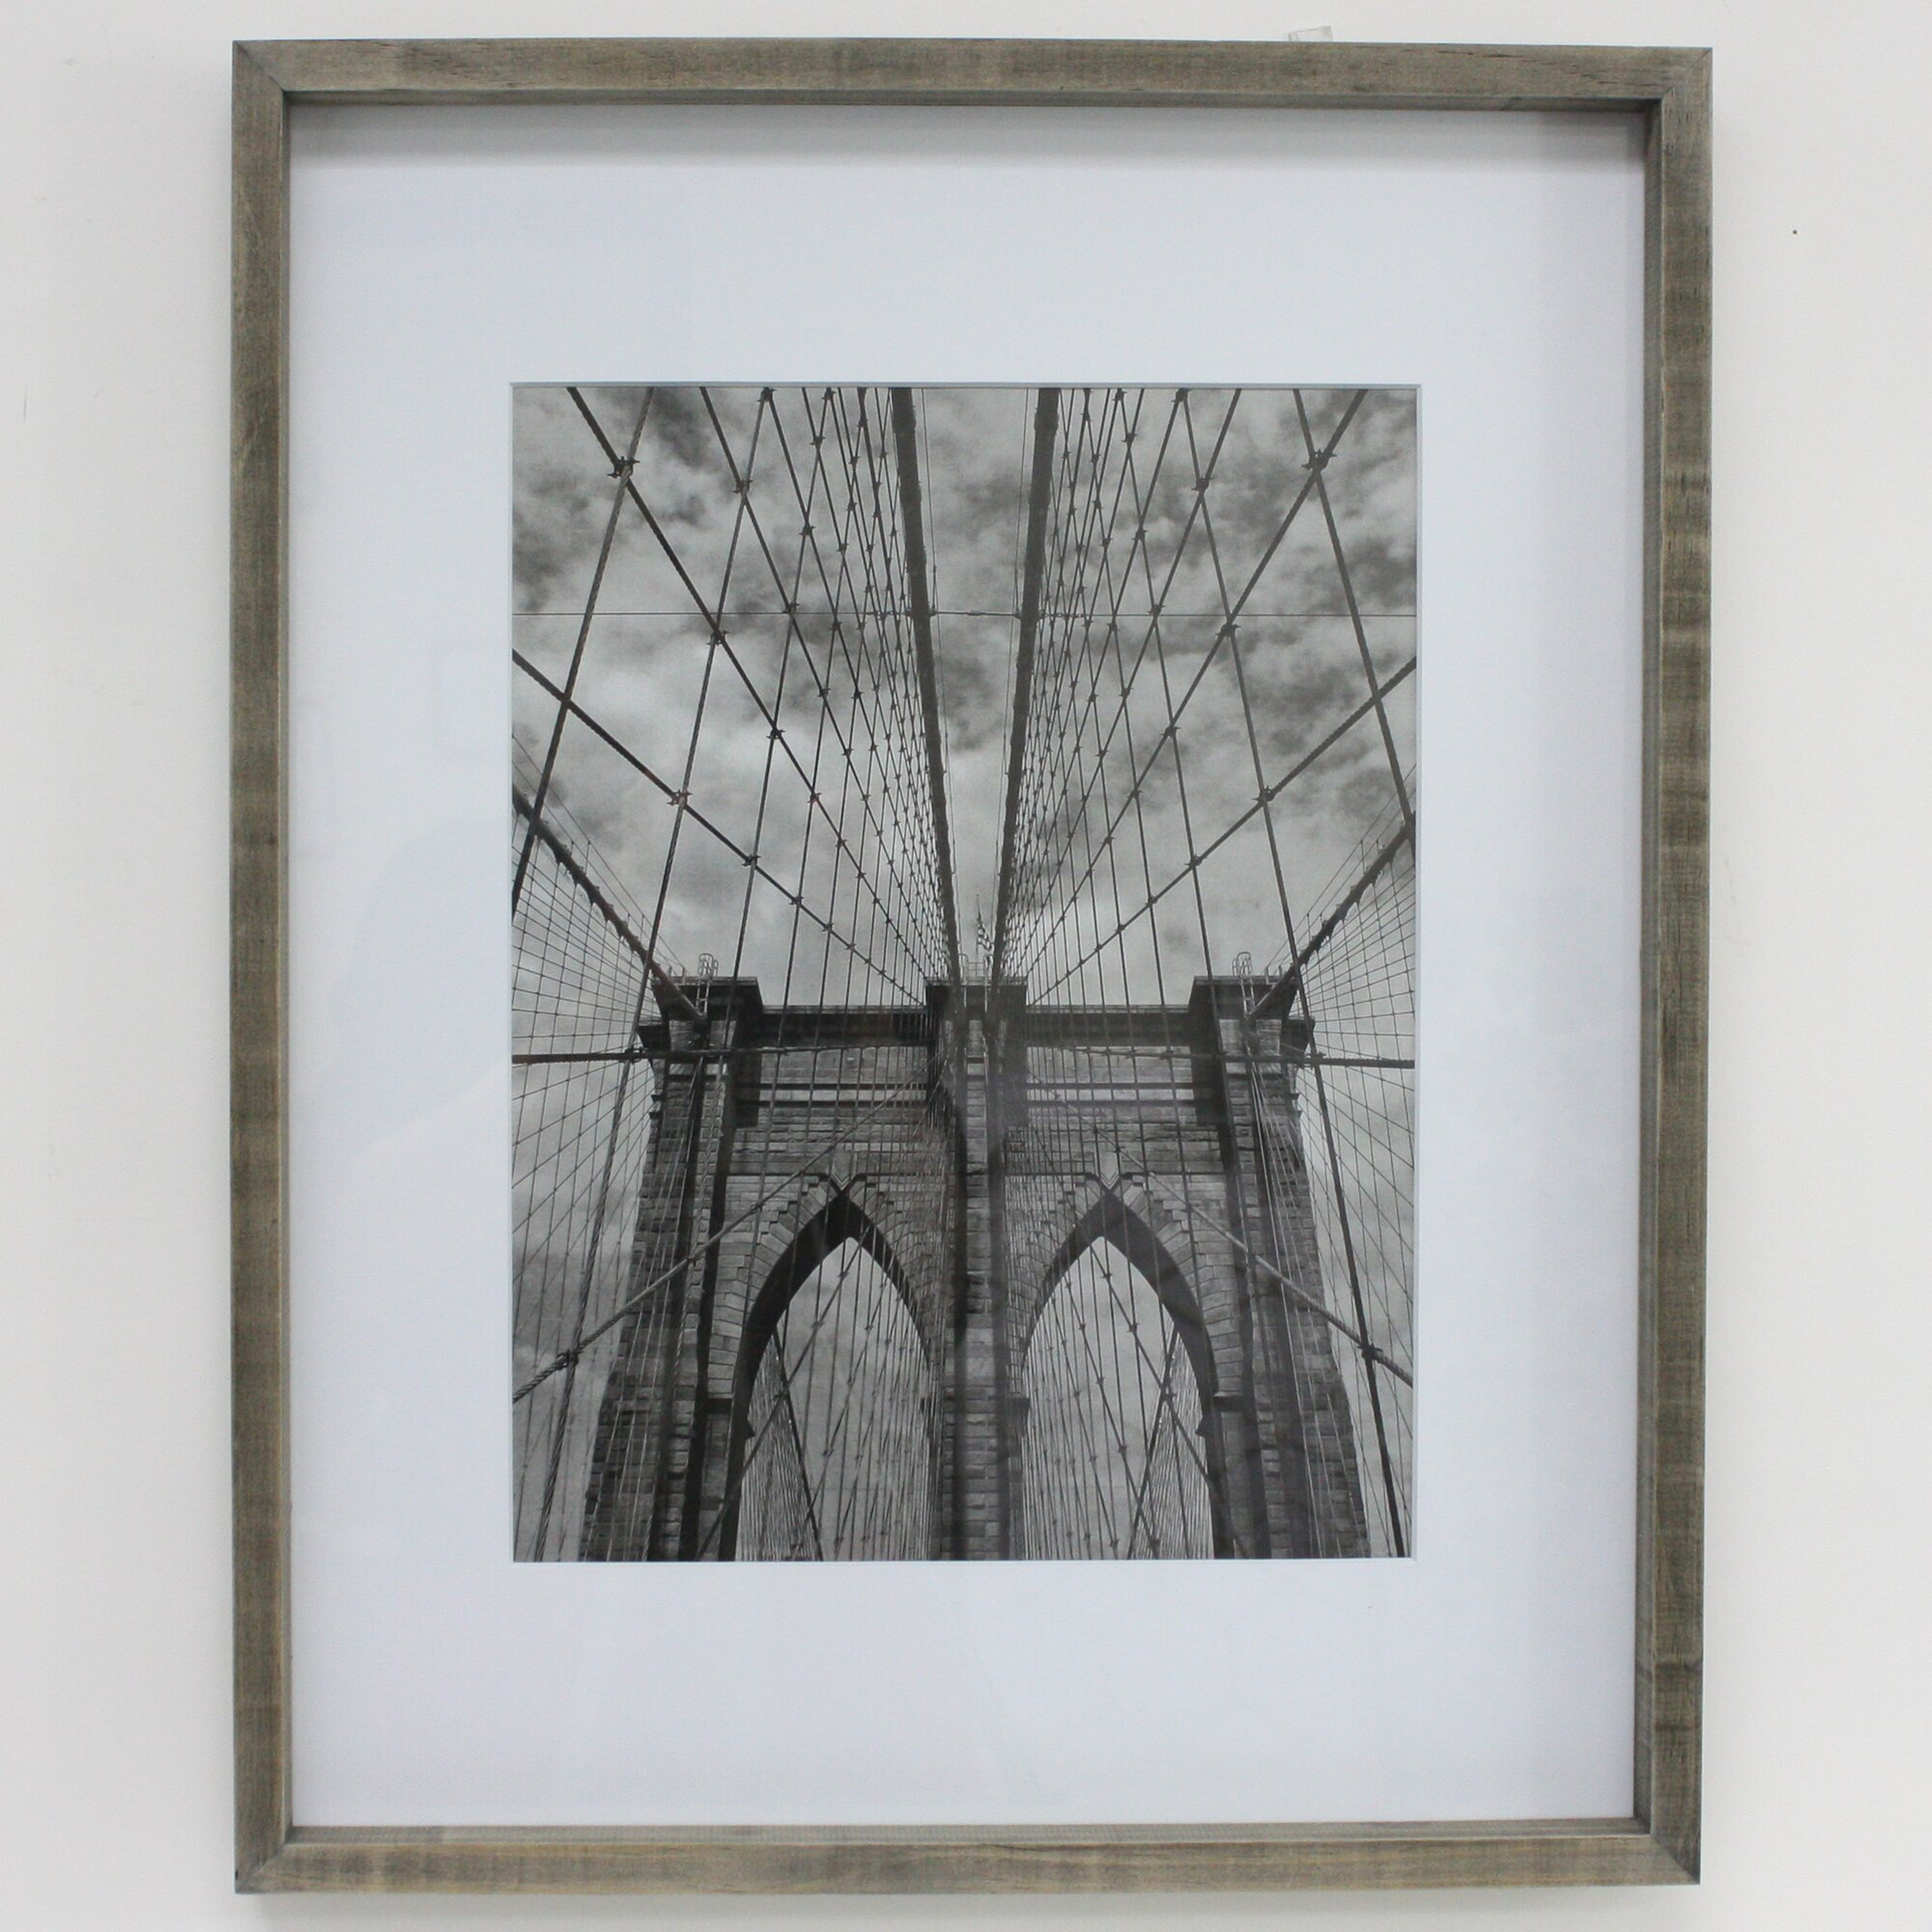 Http Www Wayfair Com Briken Distressed Frame Matted Natural Picture Frame X68500a14m Fhk2249 Html